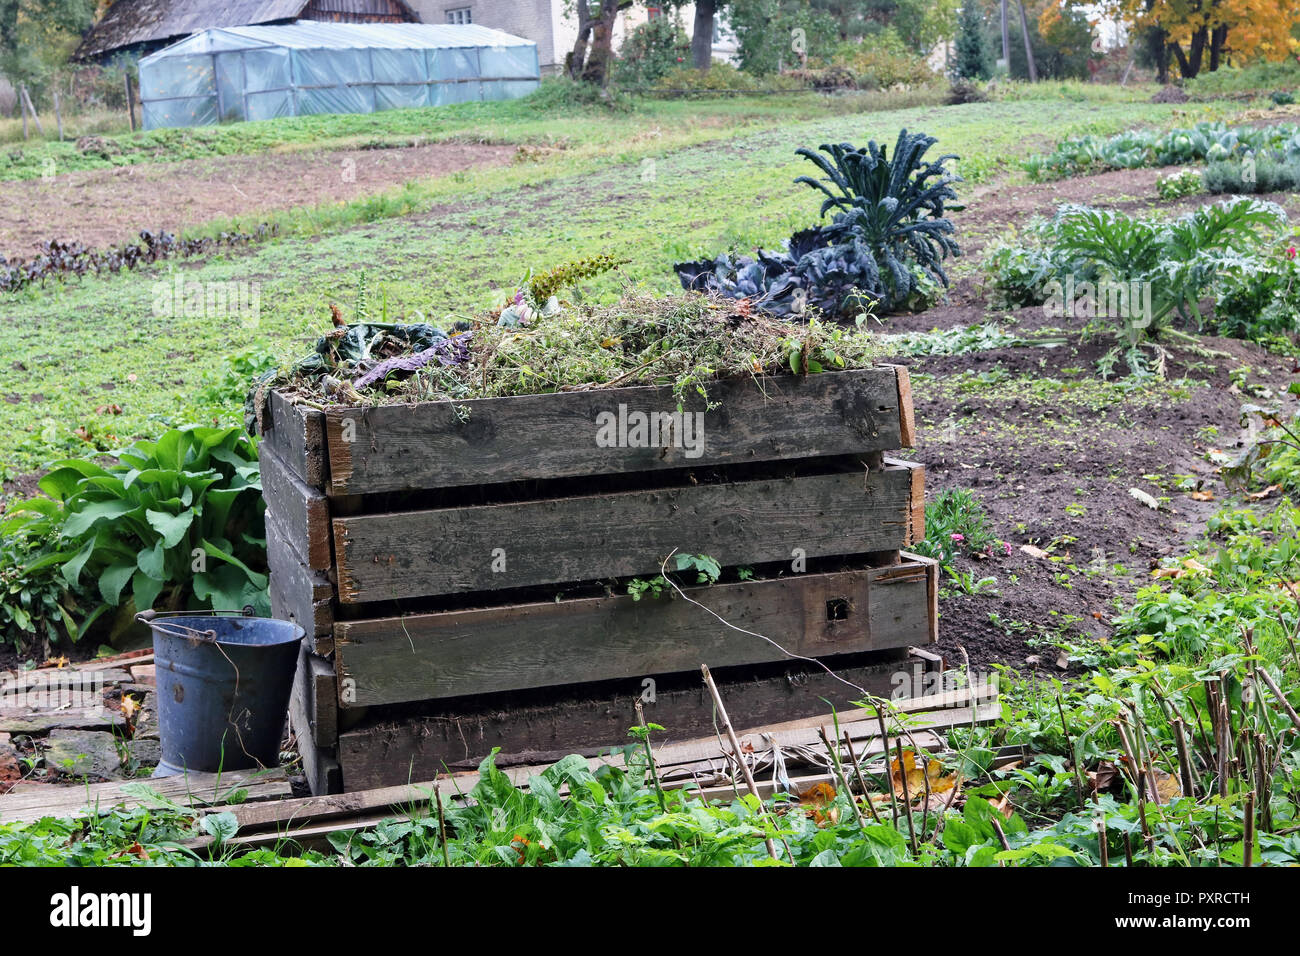 Seasonal Work In The Autumn Garden Concept Container For Wooden